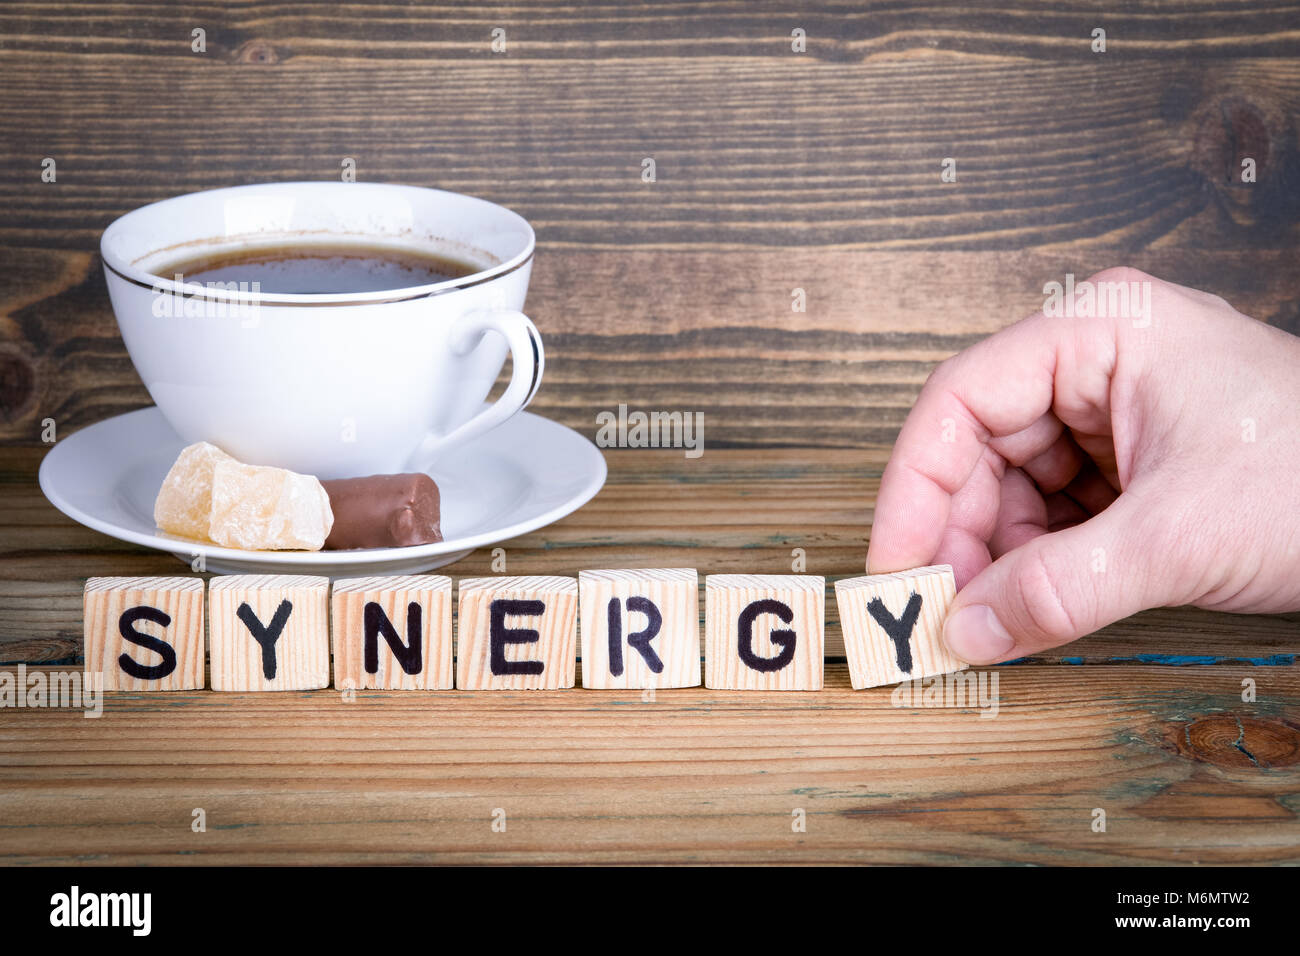 synergy. Wooden letters on the office desk, informative and communication background - Stock Image